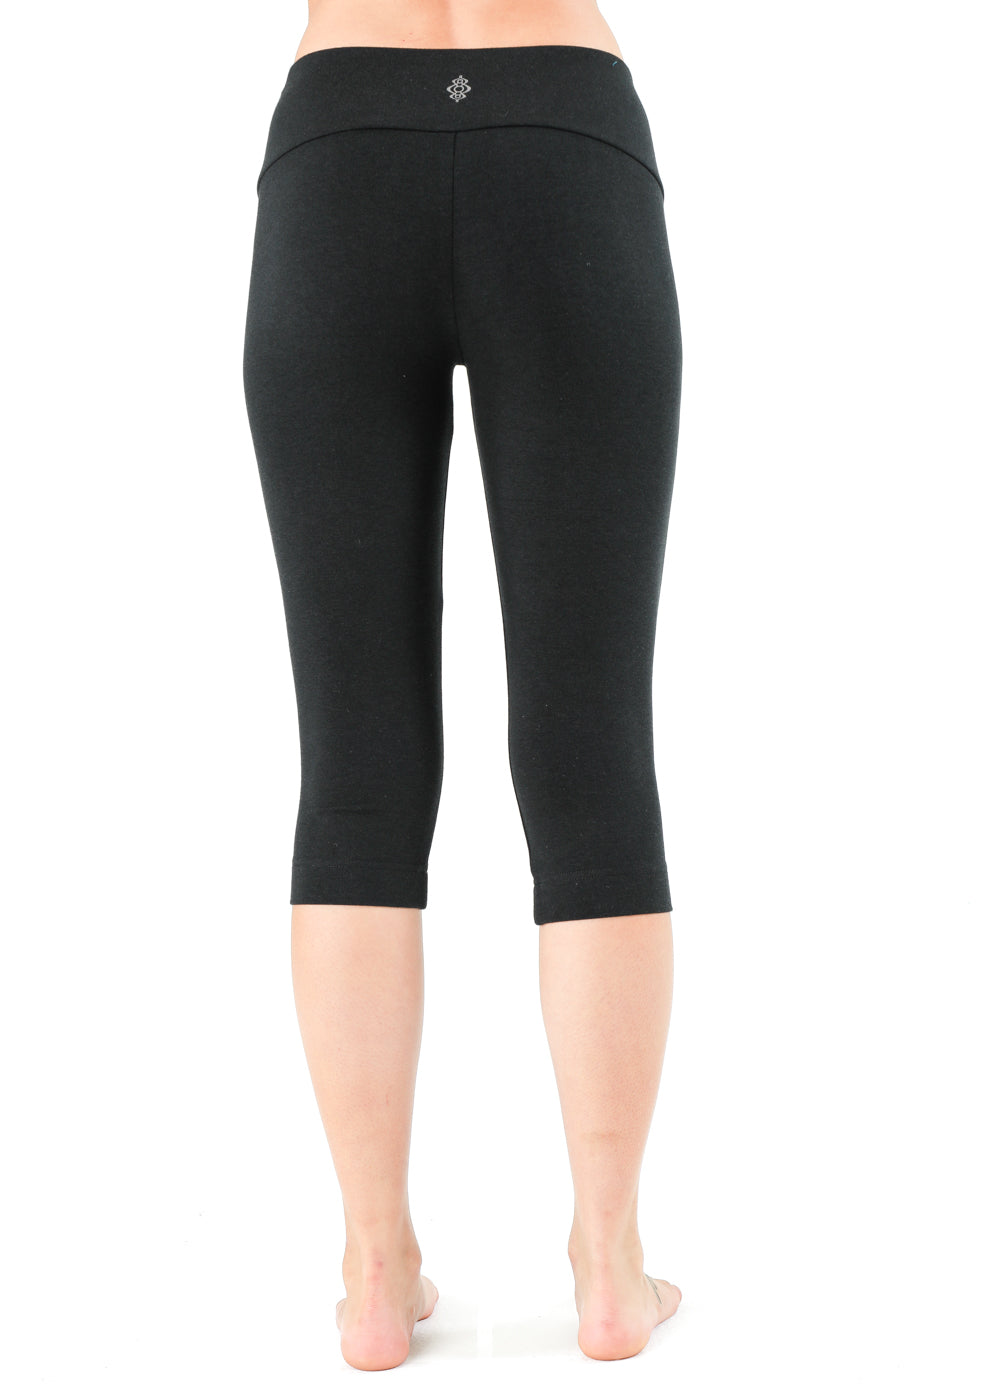 Spectrum black capri yoga legging bamboo organic cotton